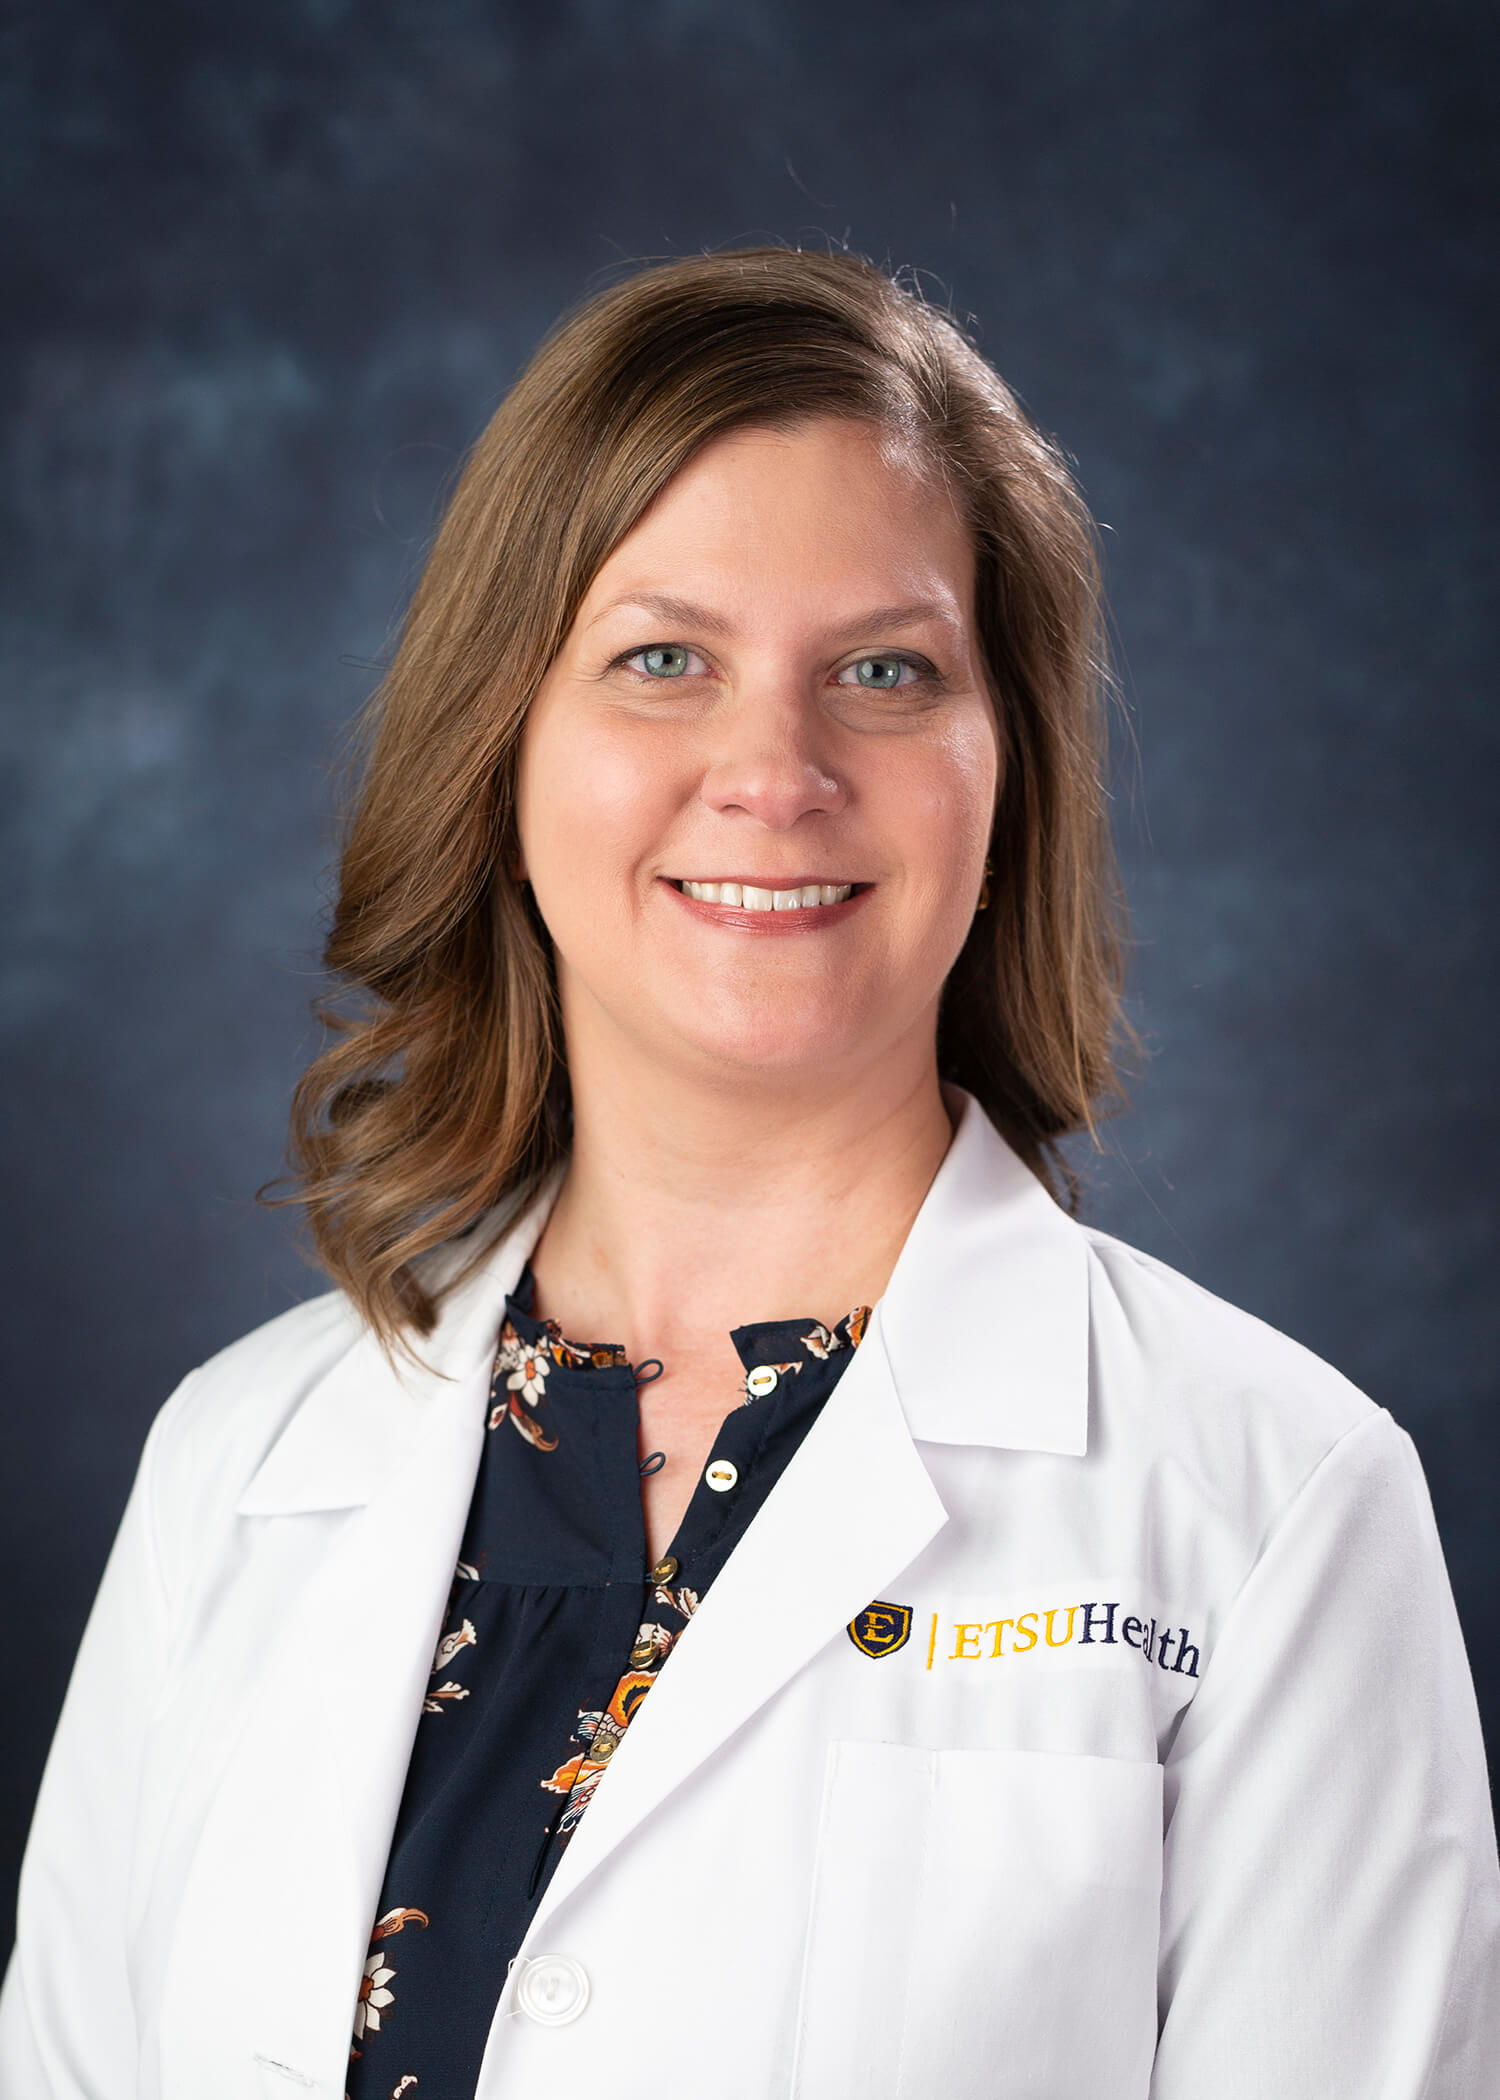 Photo of Dianna Puhr, M.D.